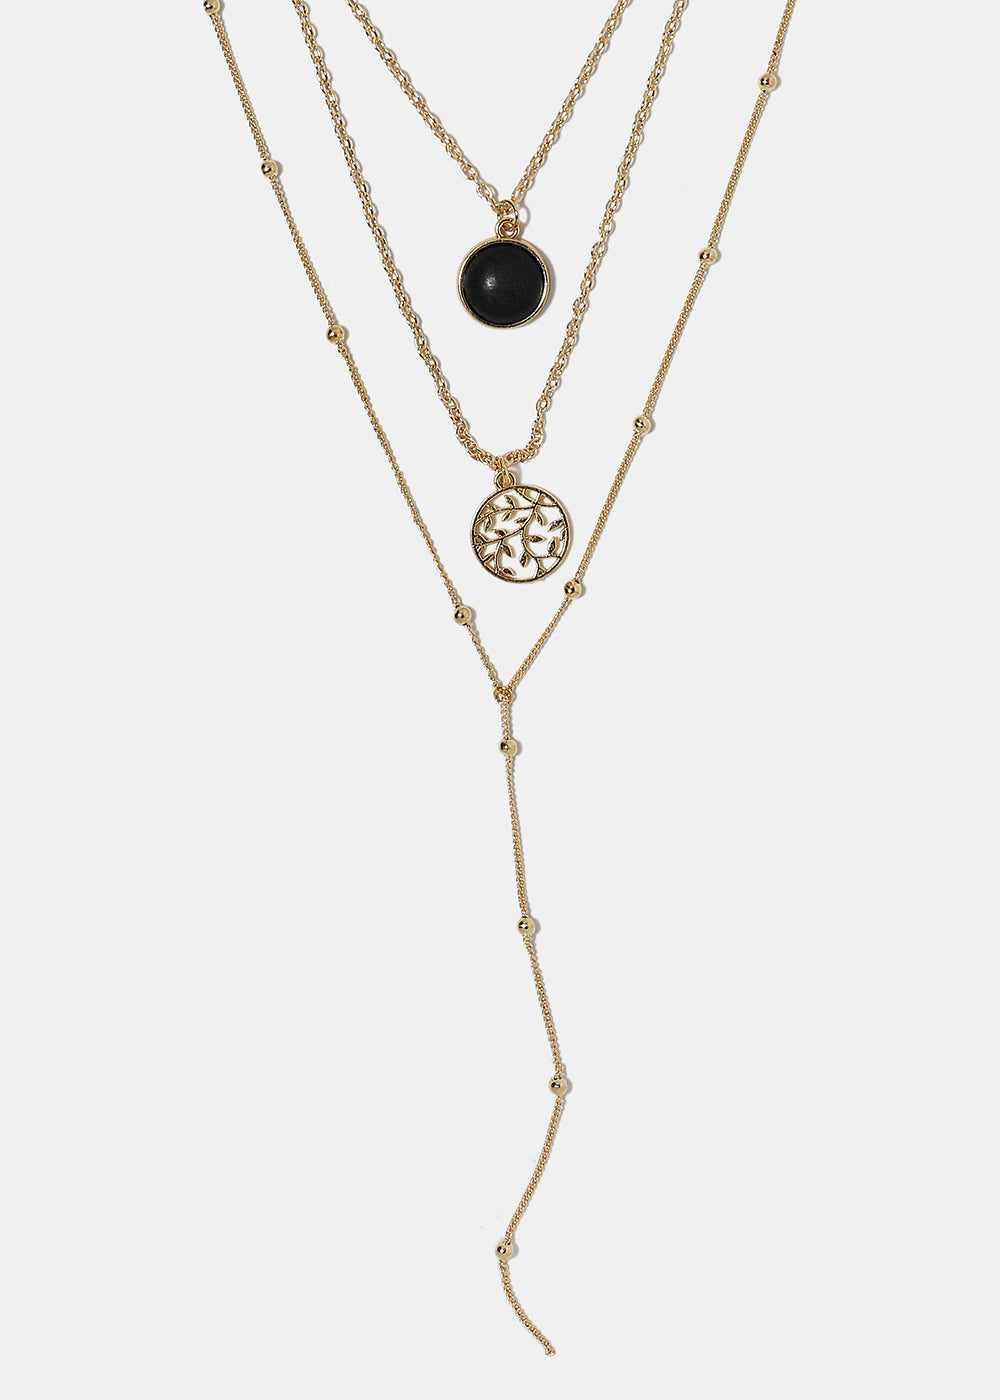 52b95951dc86 Boho Stone Layered Chain Necklace – Shop Miss A